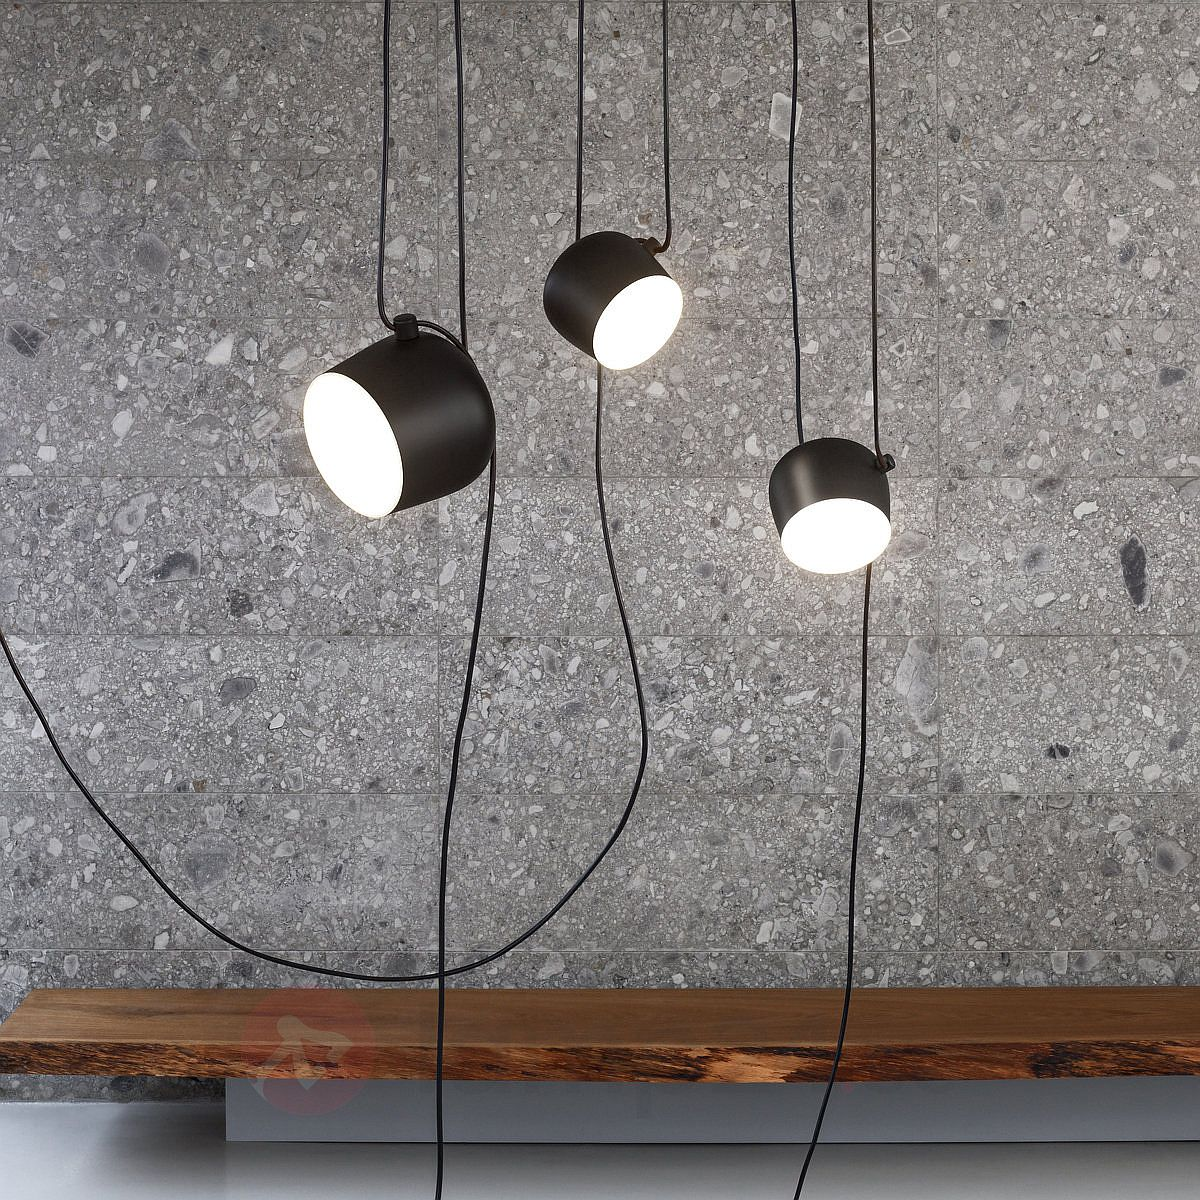 Versatile-and-flexible-AIM-Suspension-Light-designed-by-R